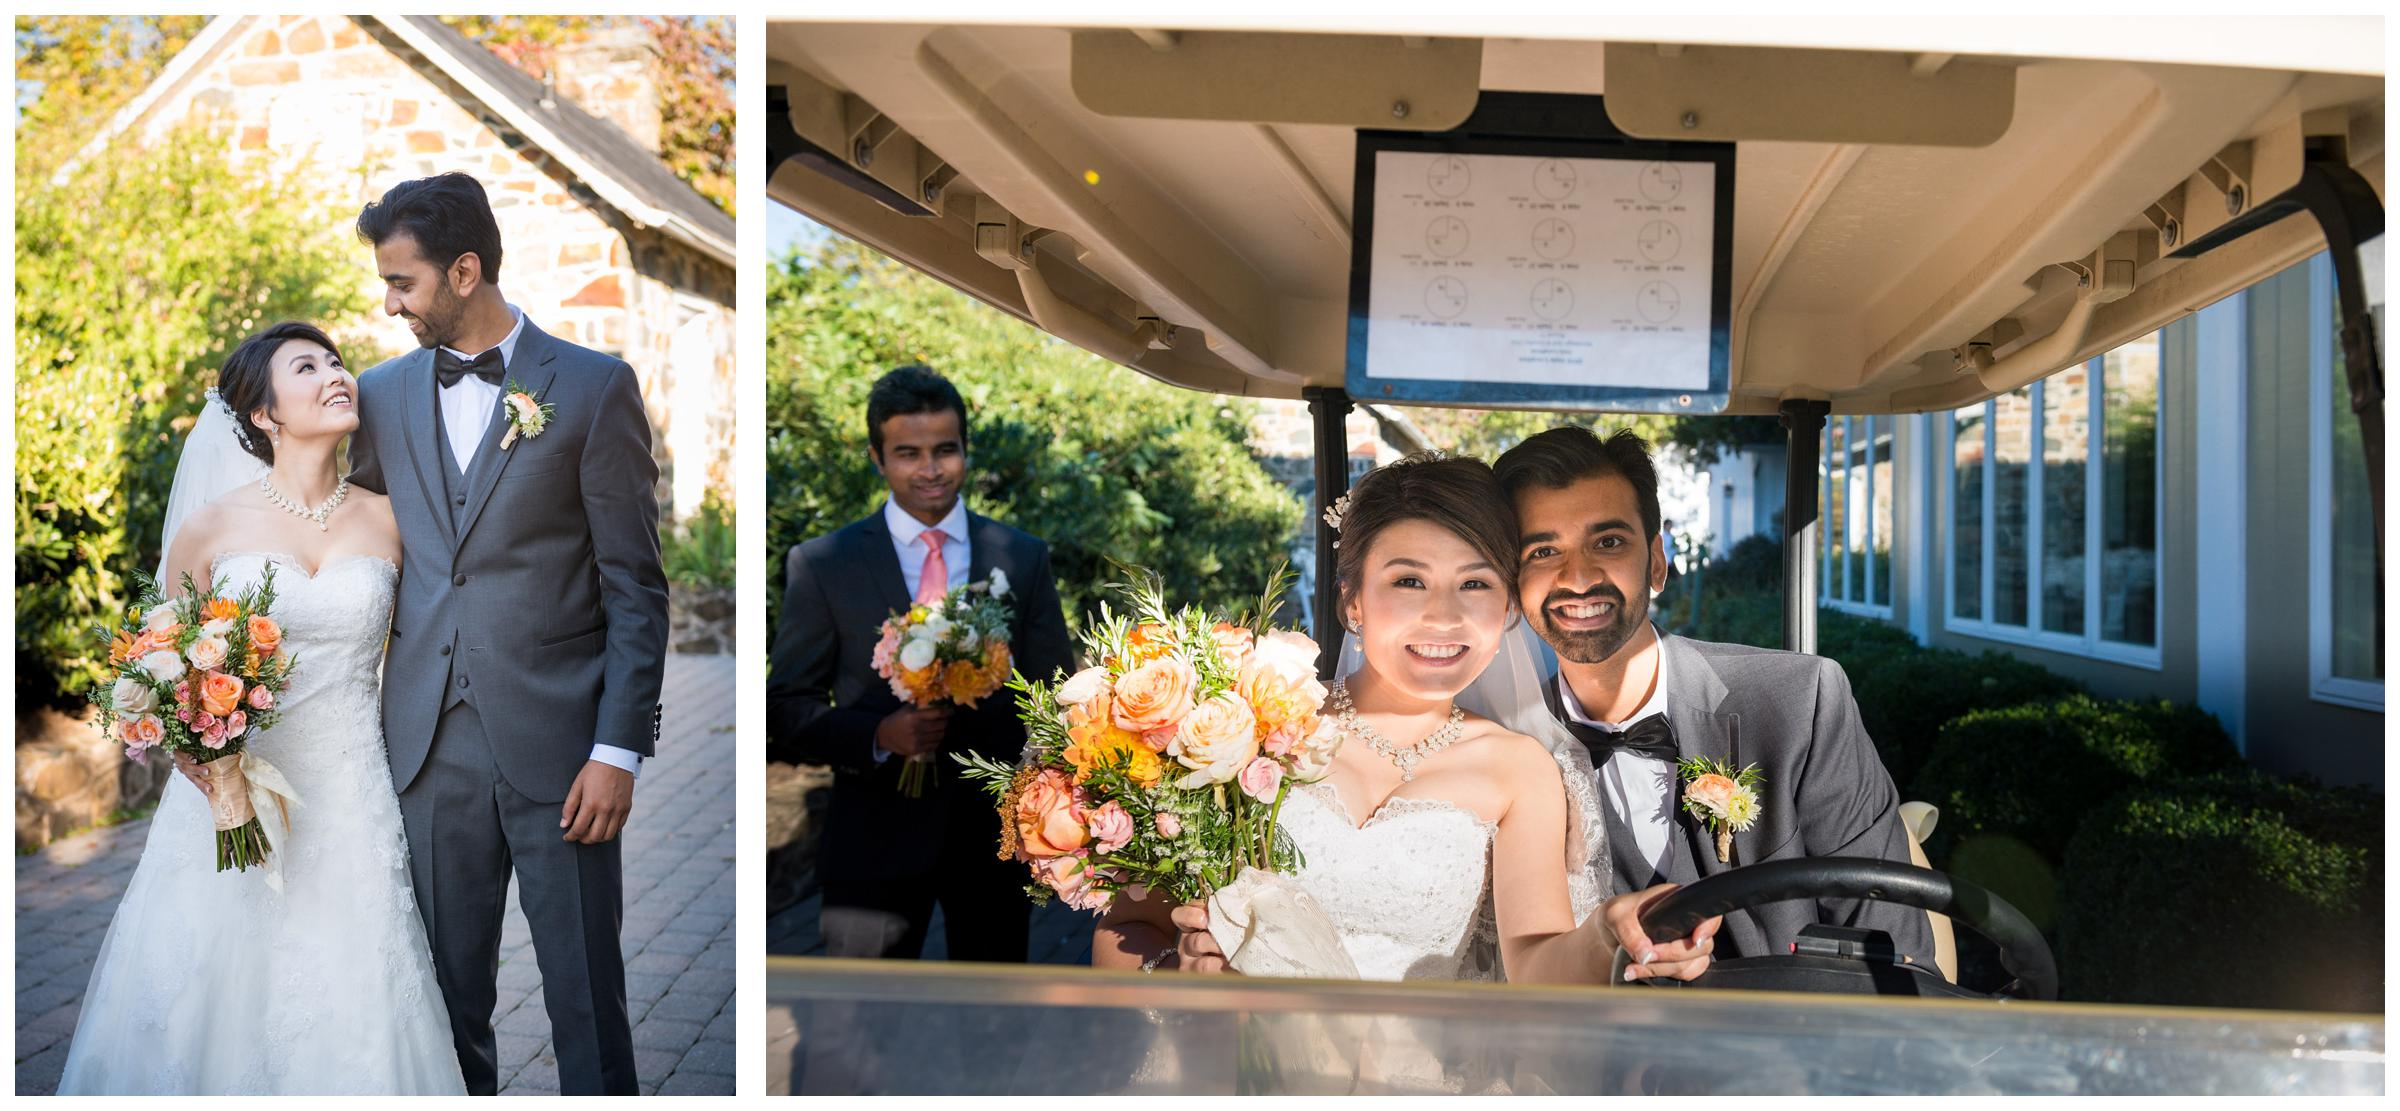 Bride and groom on golf cart following outdoor wedding.